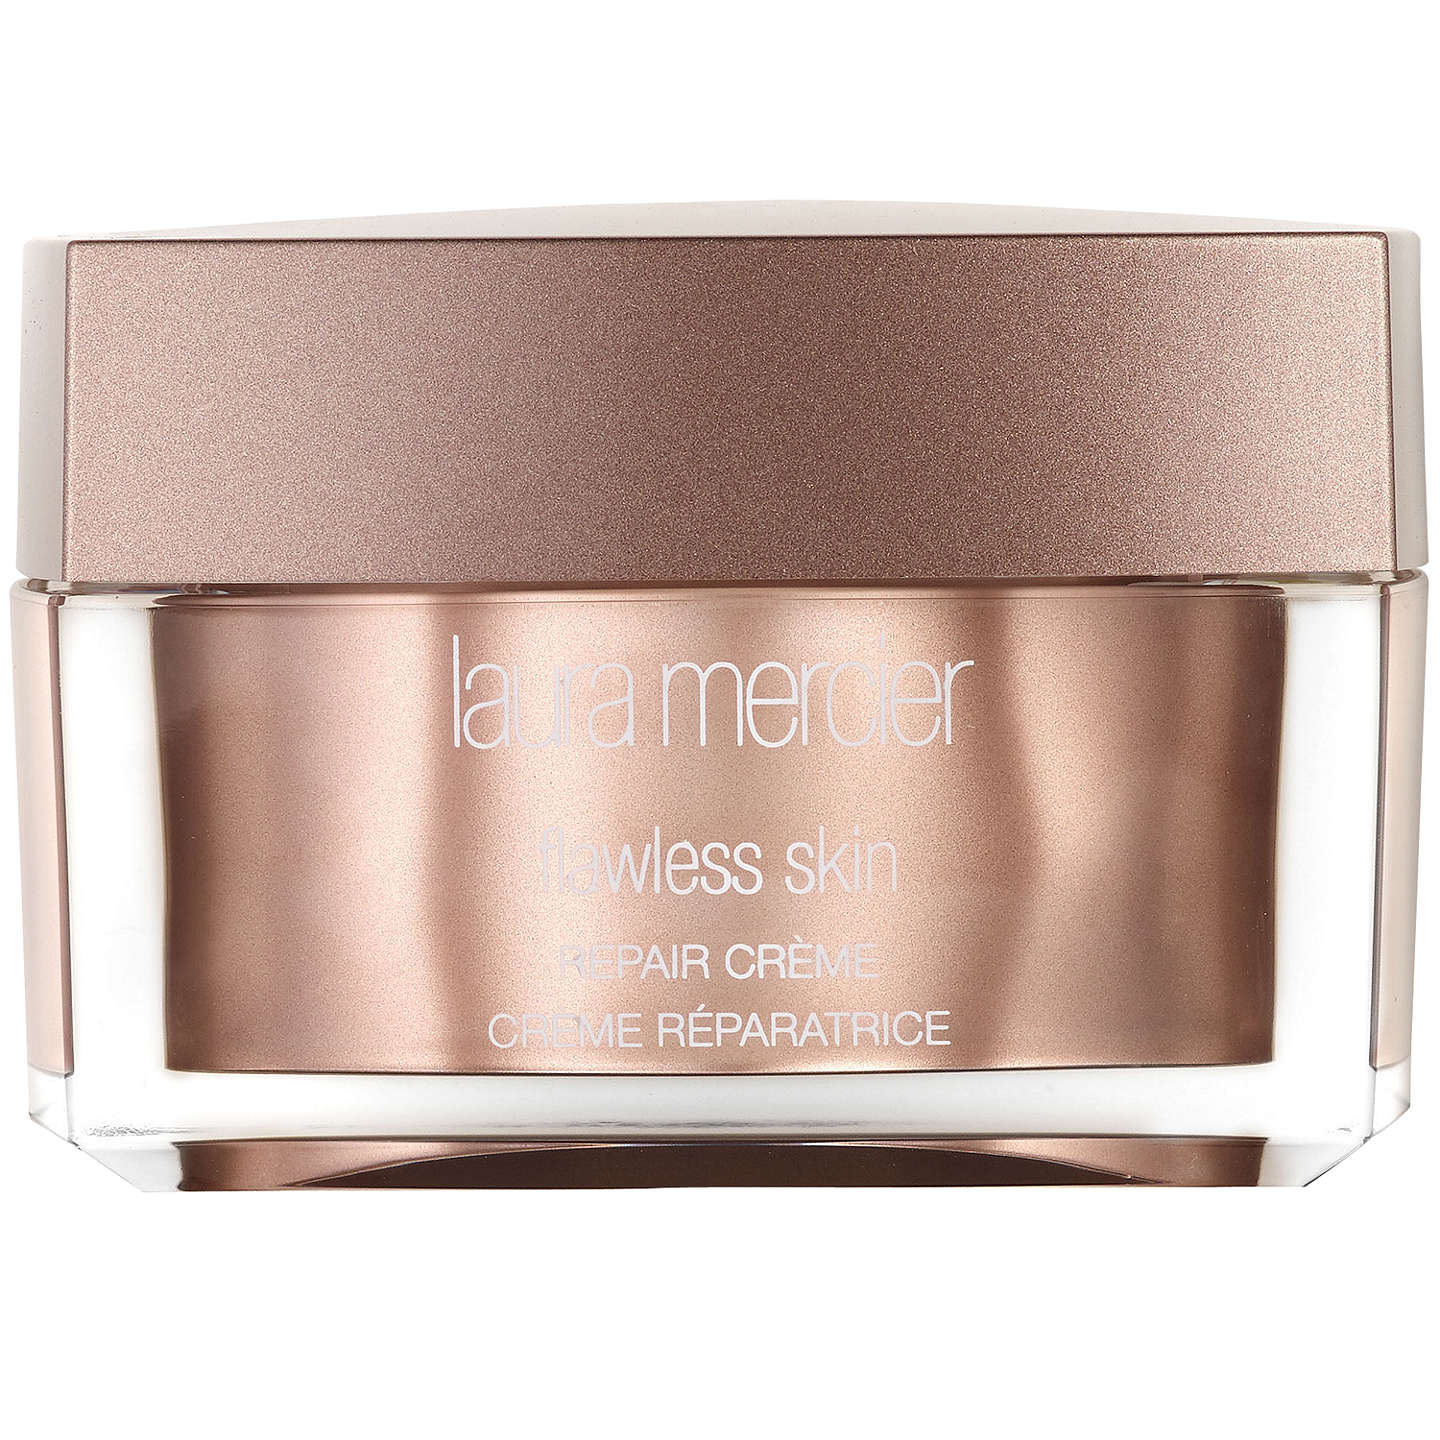 BuyLaura Mercier Repair Crème, 50g Online at johnlewis.com